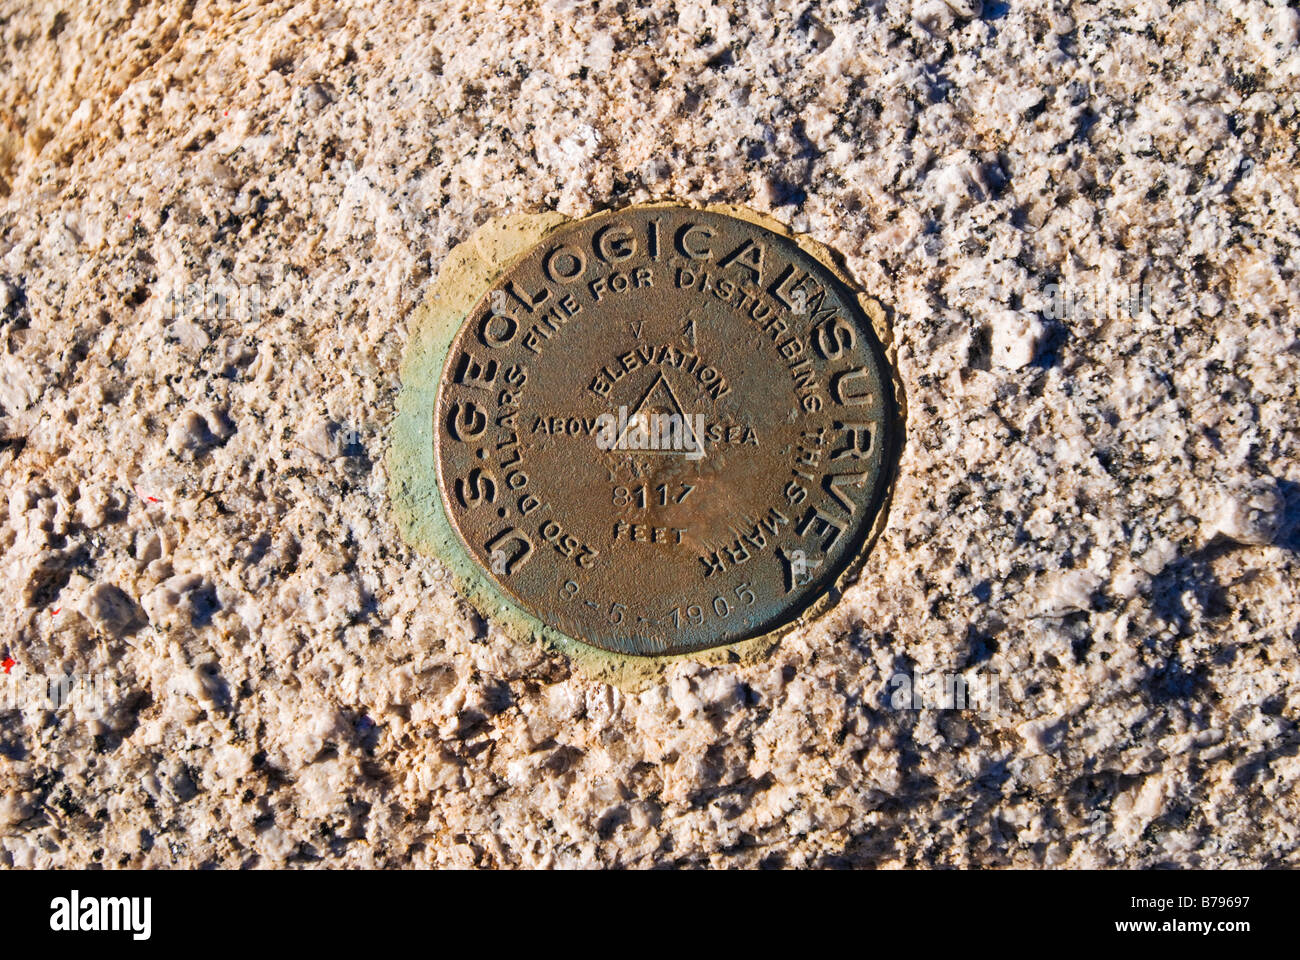 USGS survey marker on the summit of Sentinel Dome Yosemite National Park California - Stock Image